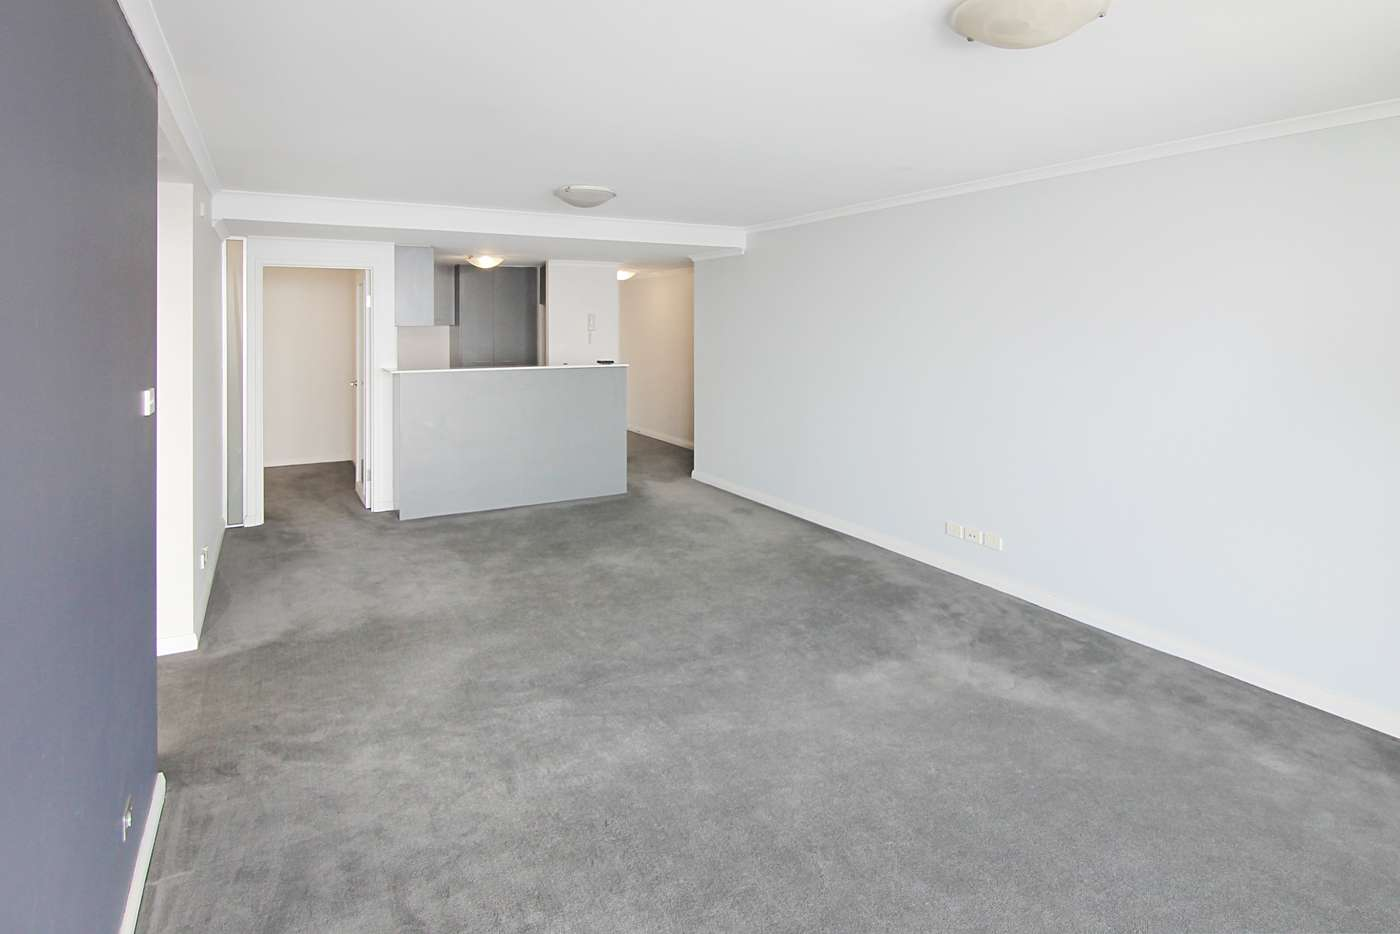 Sixth view of Homely apartment listing, 712/316 Charlestown Road, Charlestown NSW 2290